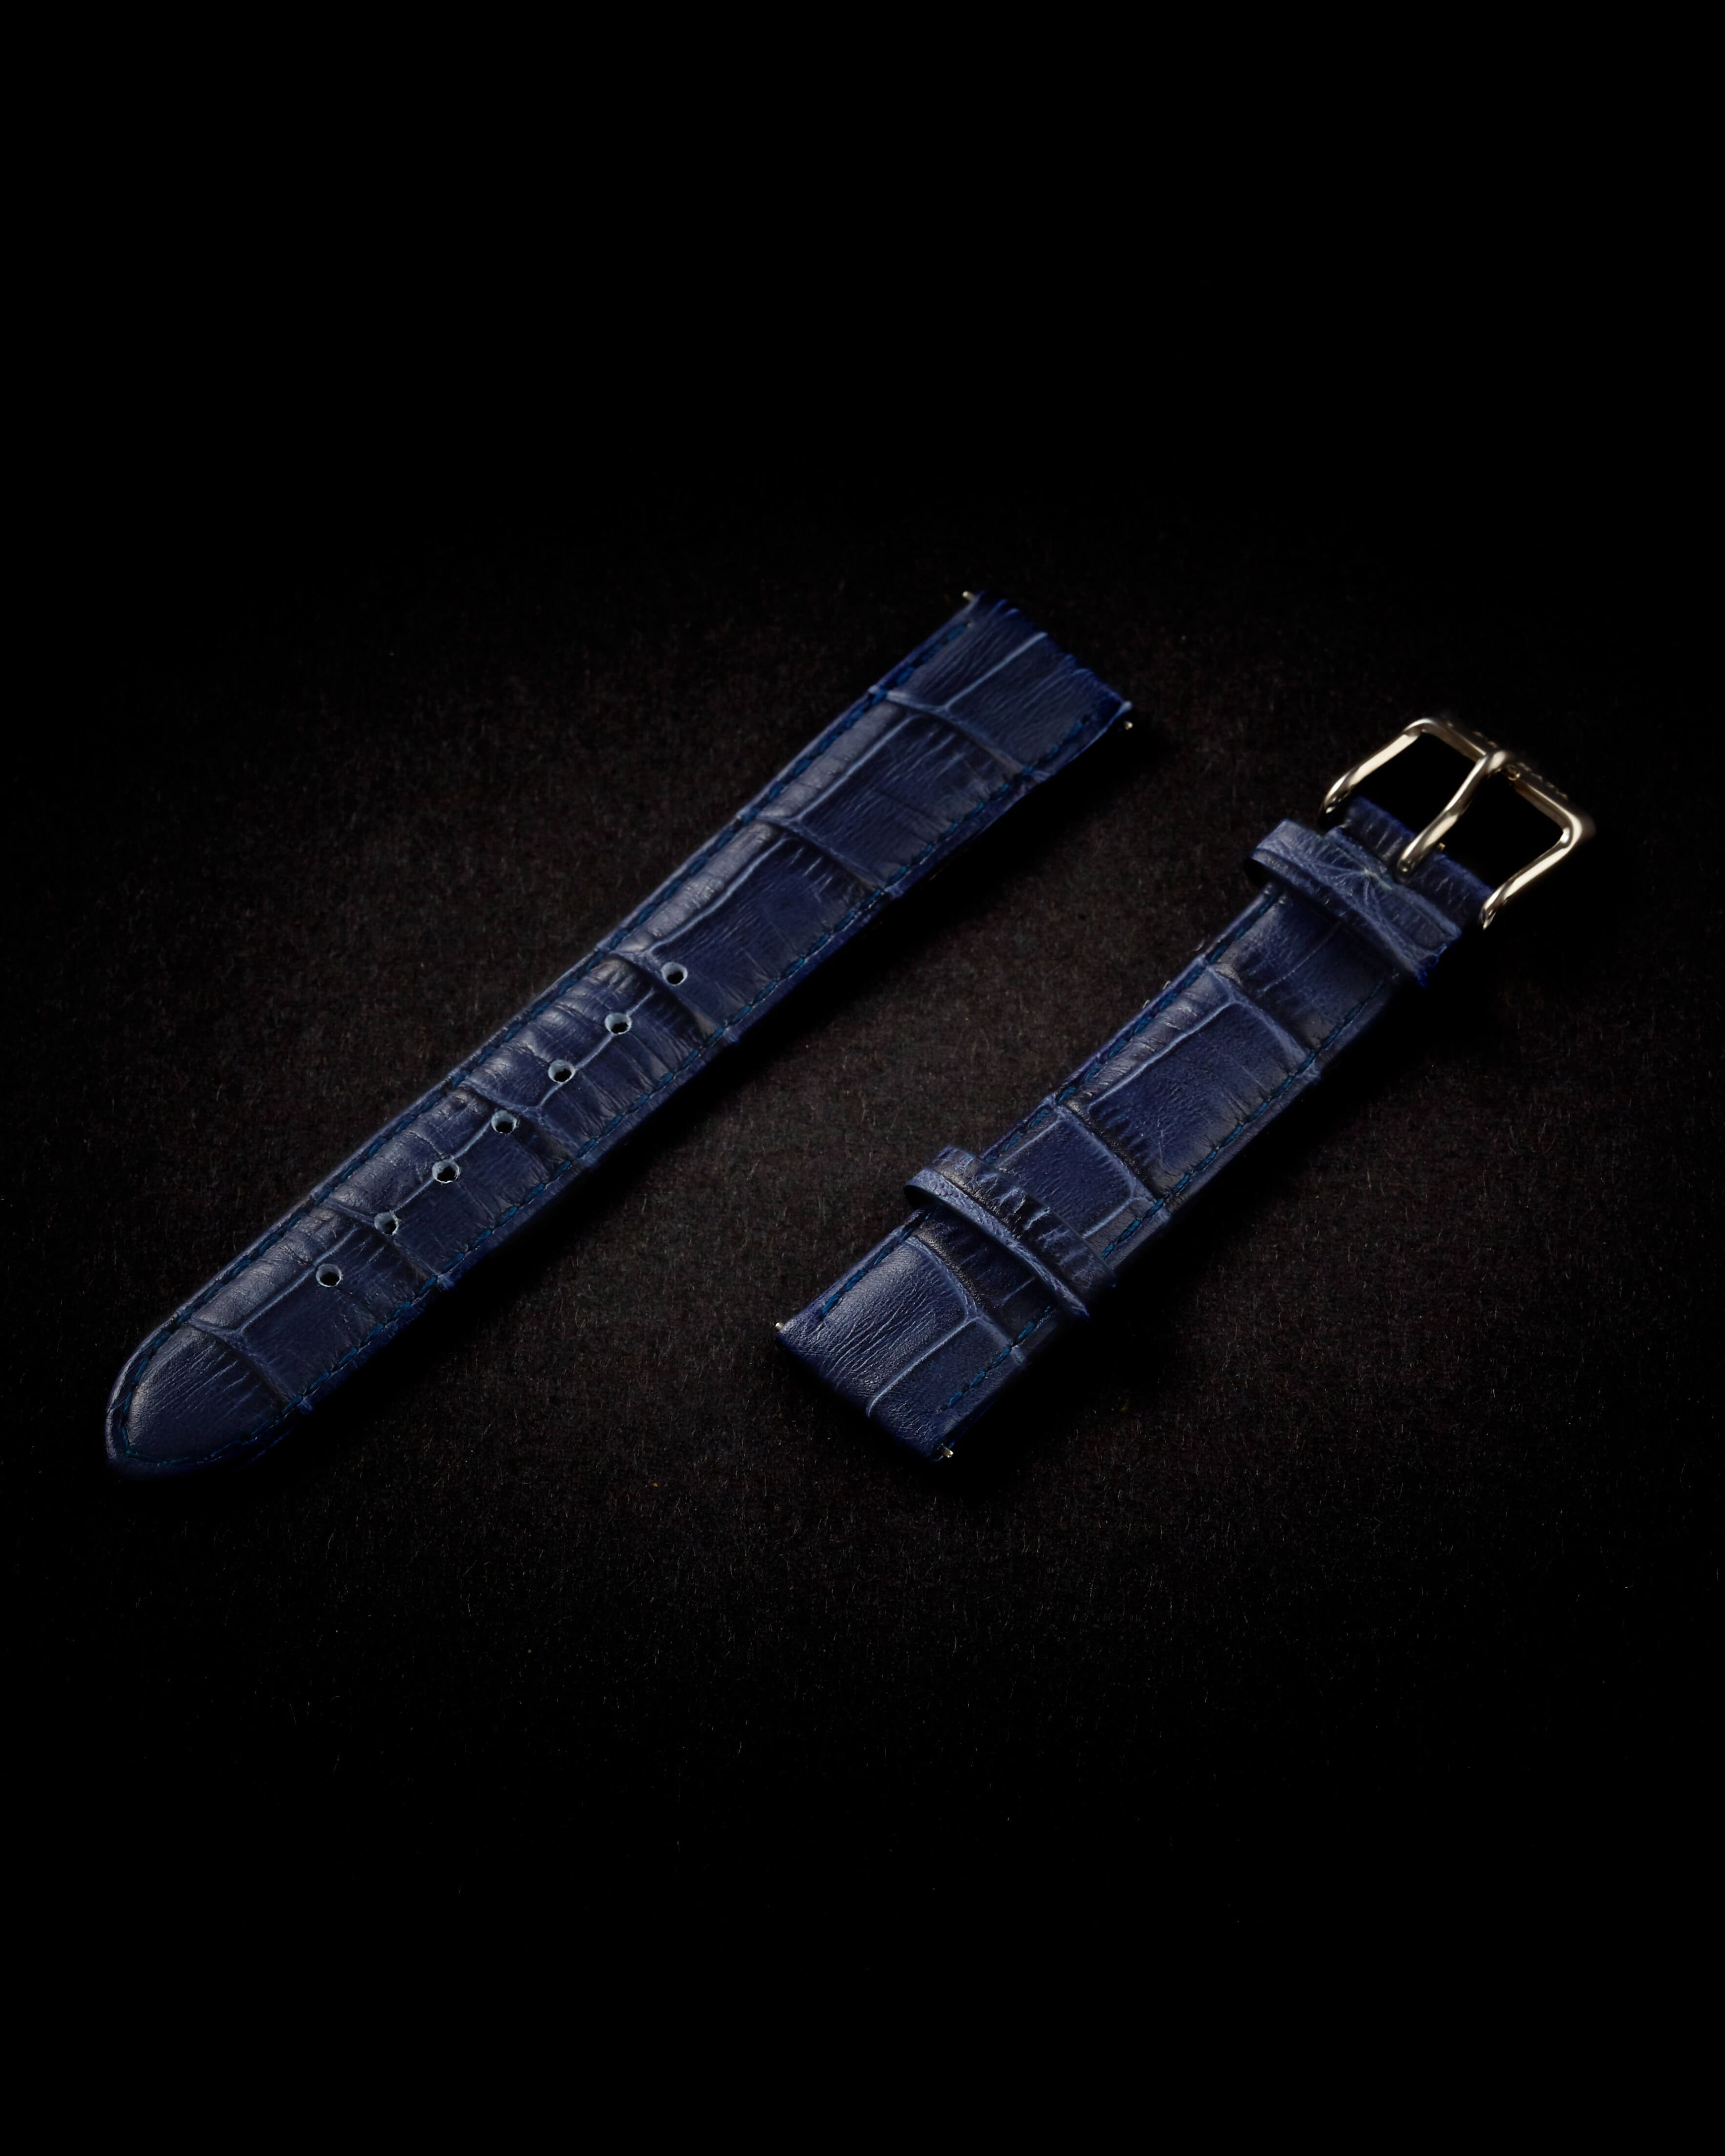 Blue leather strap 20mm, silver buckle